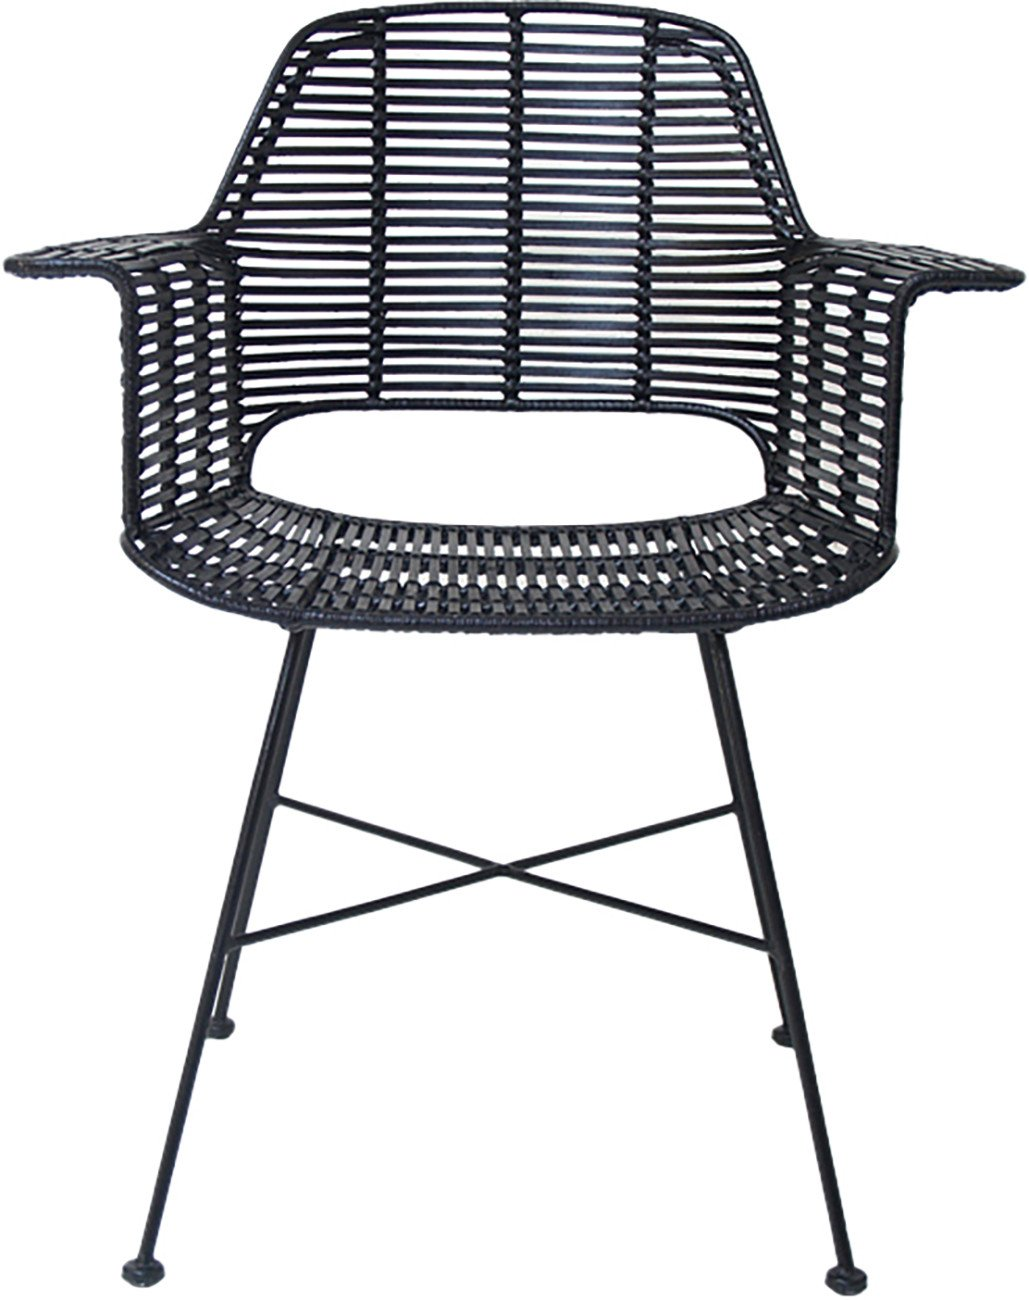 Black Rattan Tub Chair, HKliving